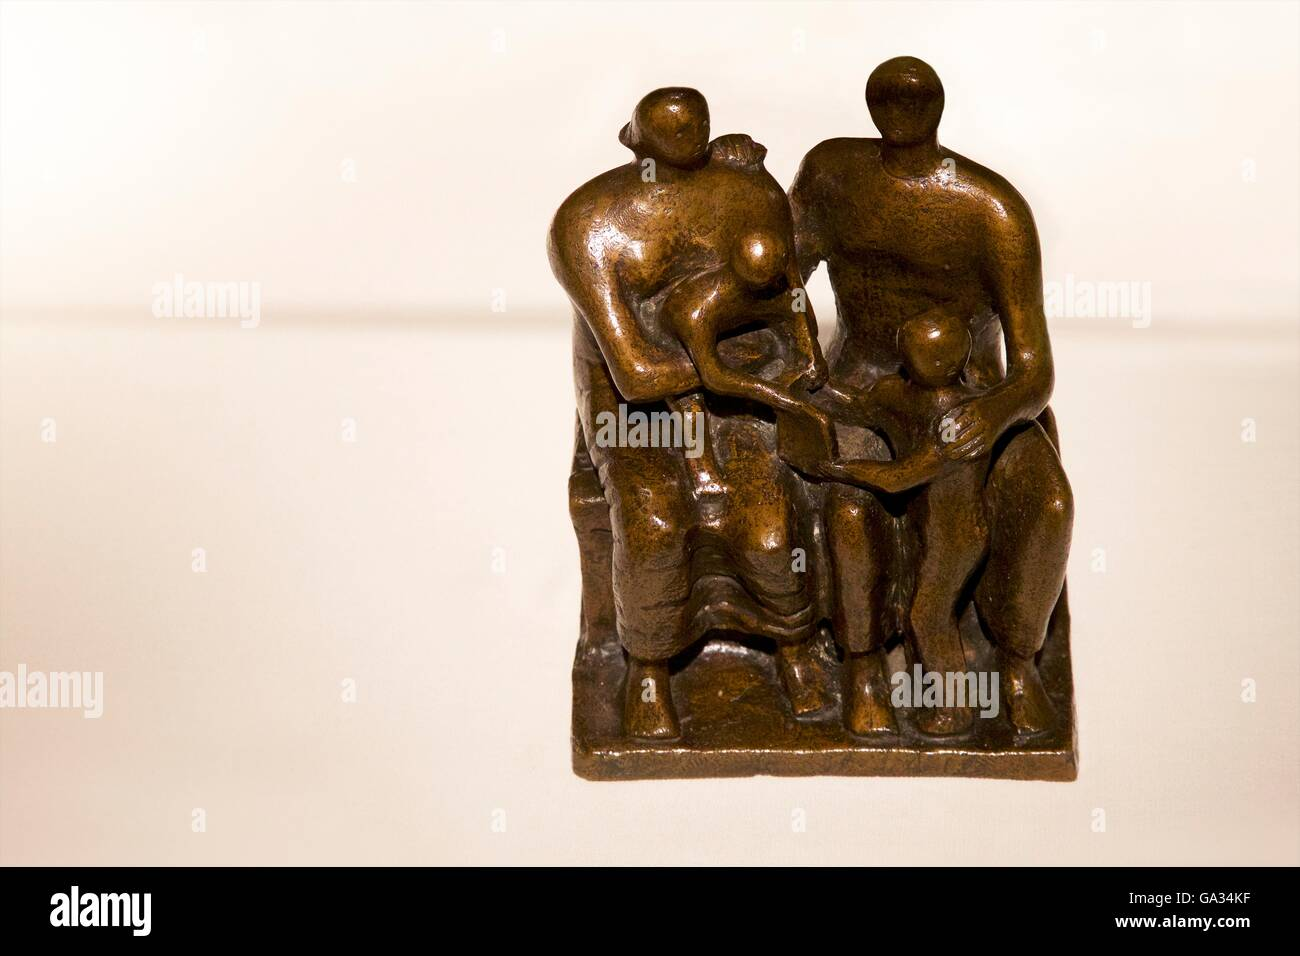 Family Group, by Henry Moore, 1944, Fitzwilliam Museum, Cambridge, England, UK, GB - Stock Image